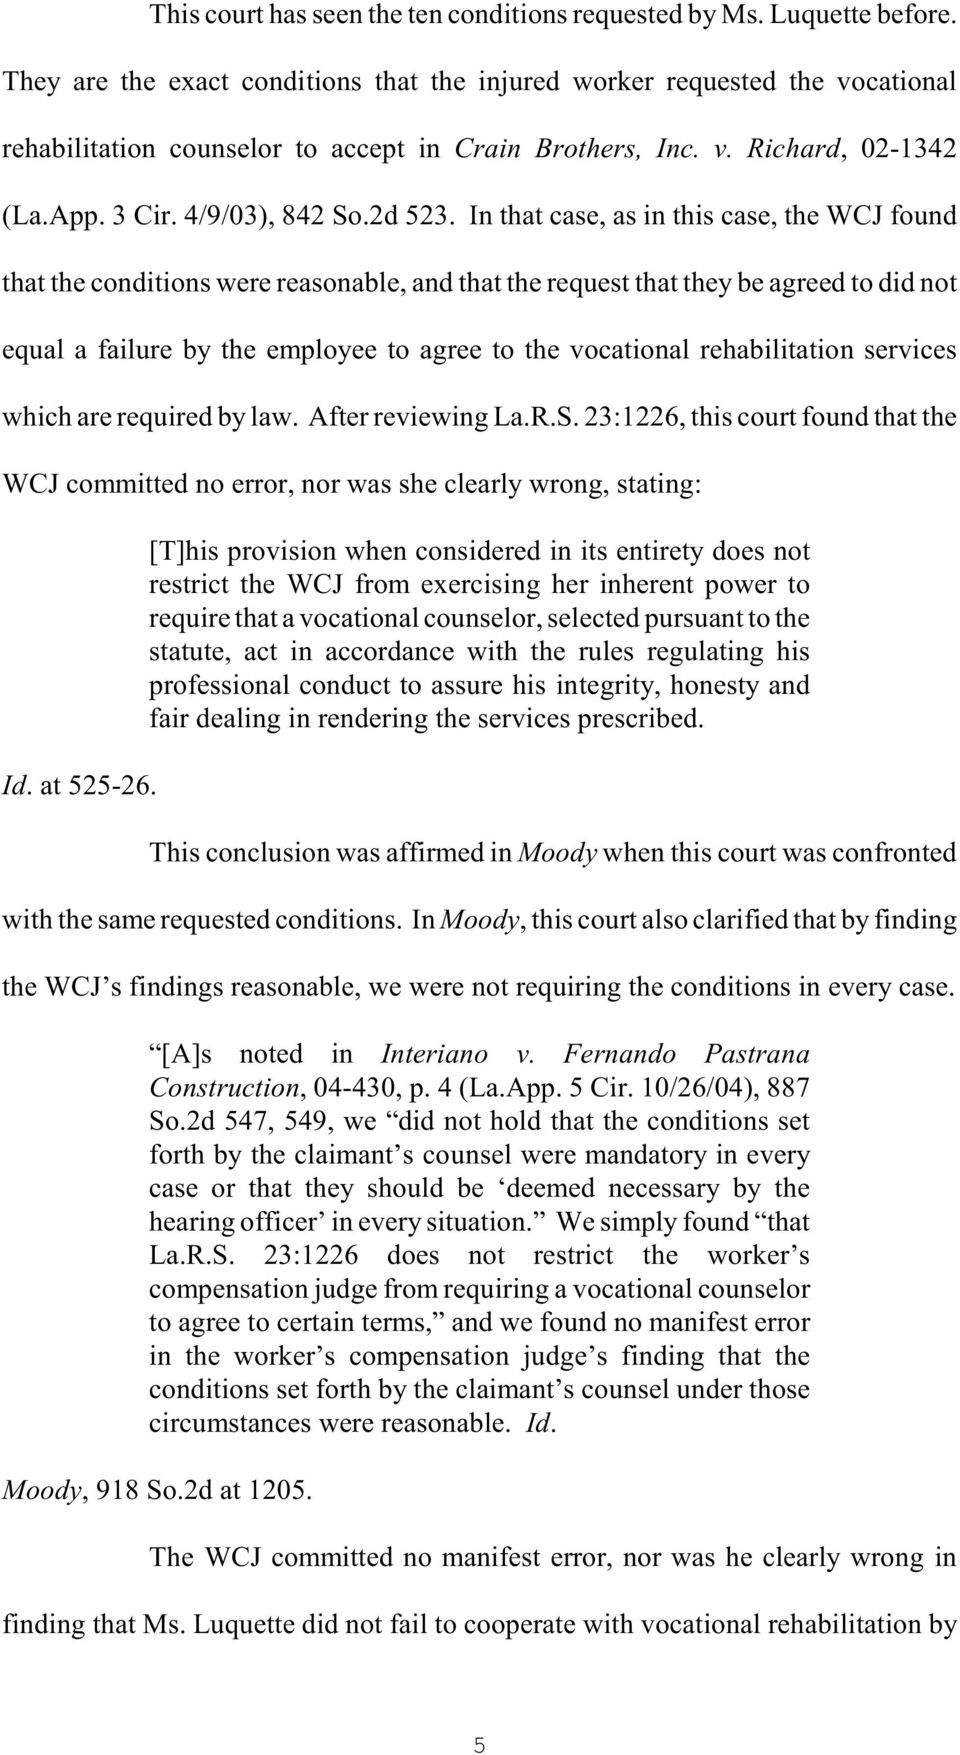 In that case, as in this case, the WCJ found that the conditions were reasonable, and that the request that they be agreed to did not equal a failure by the employee to agree to the vocational